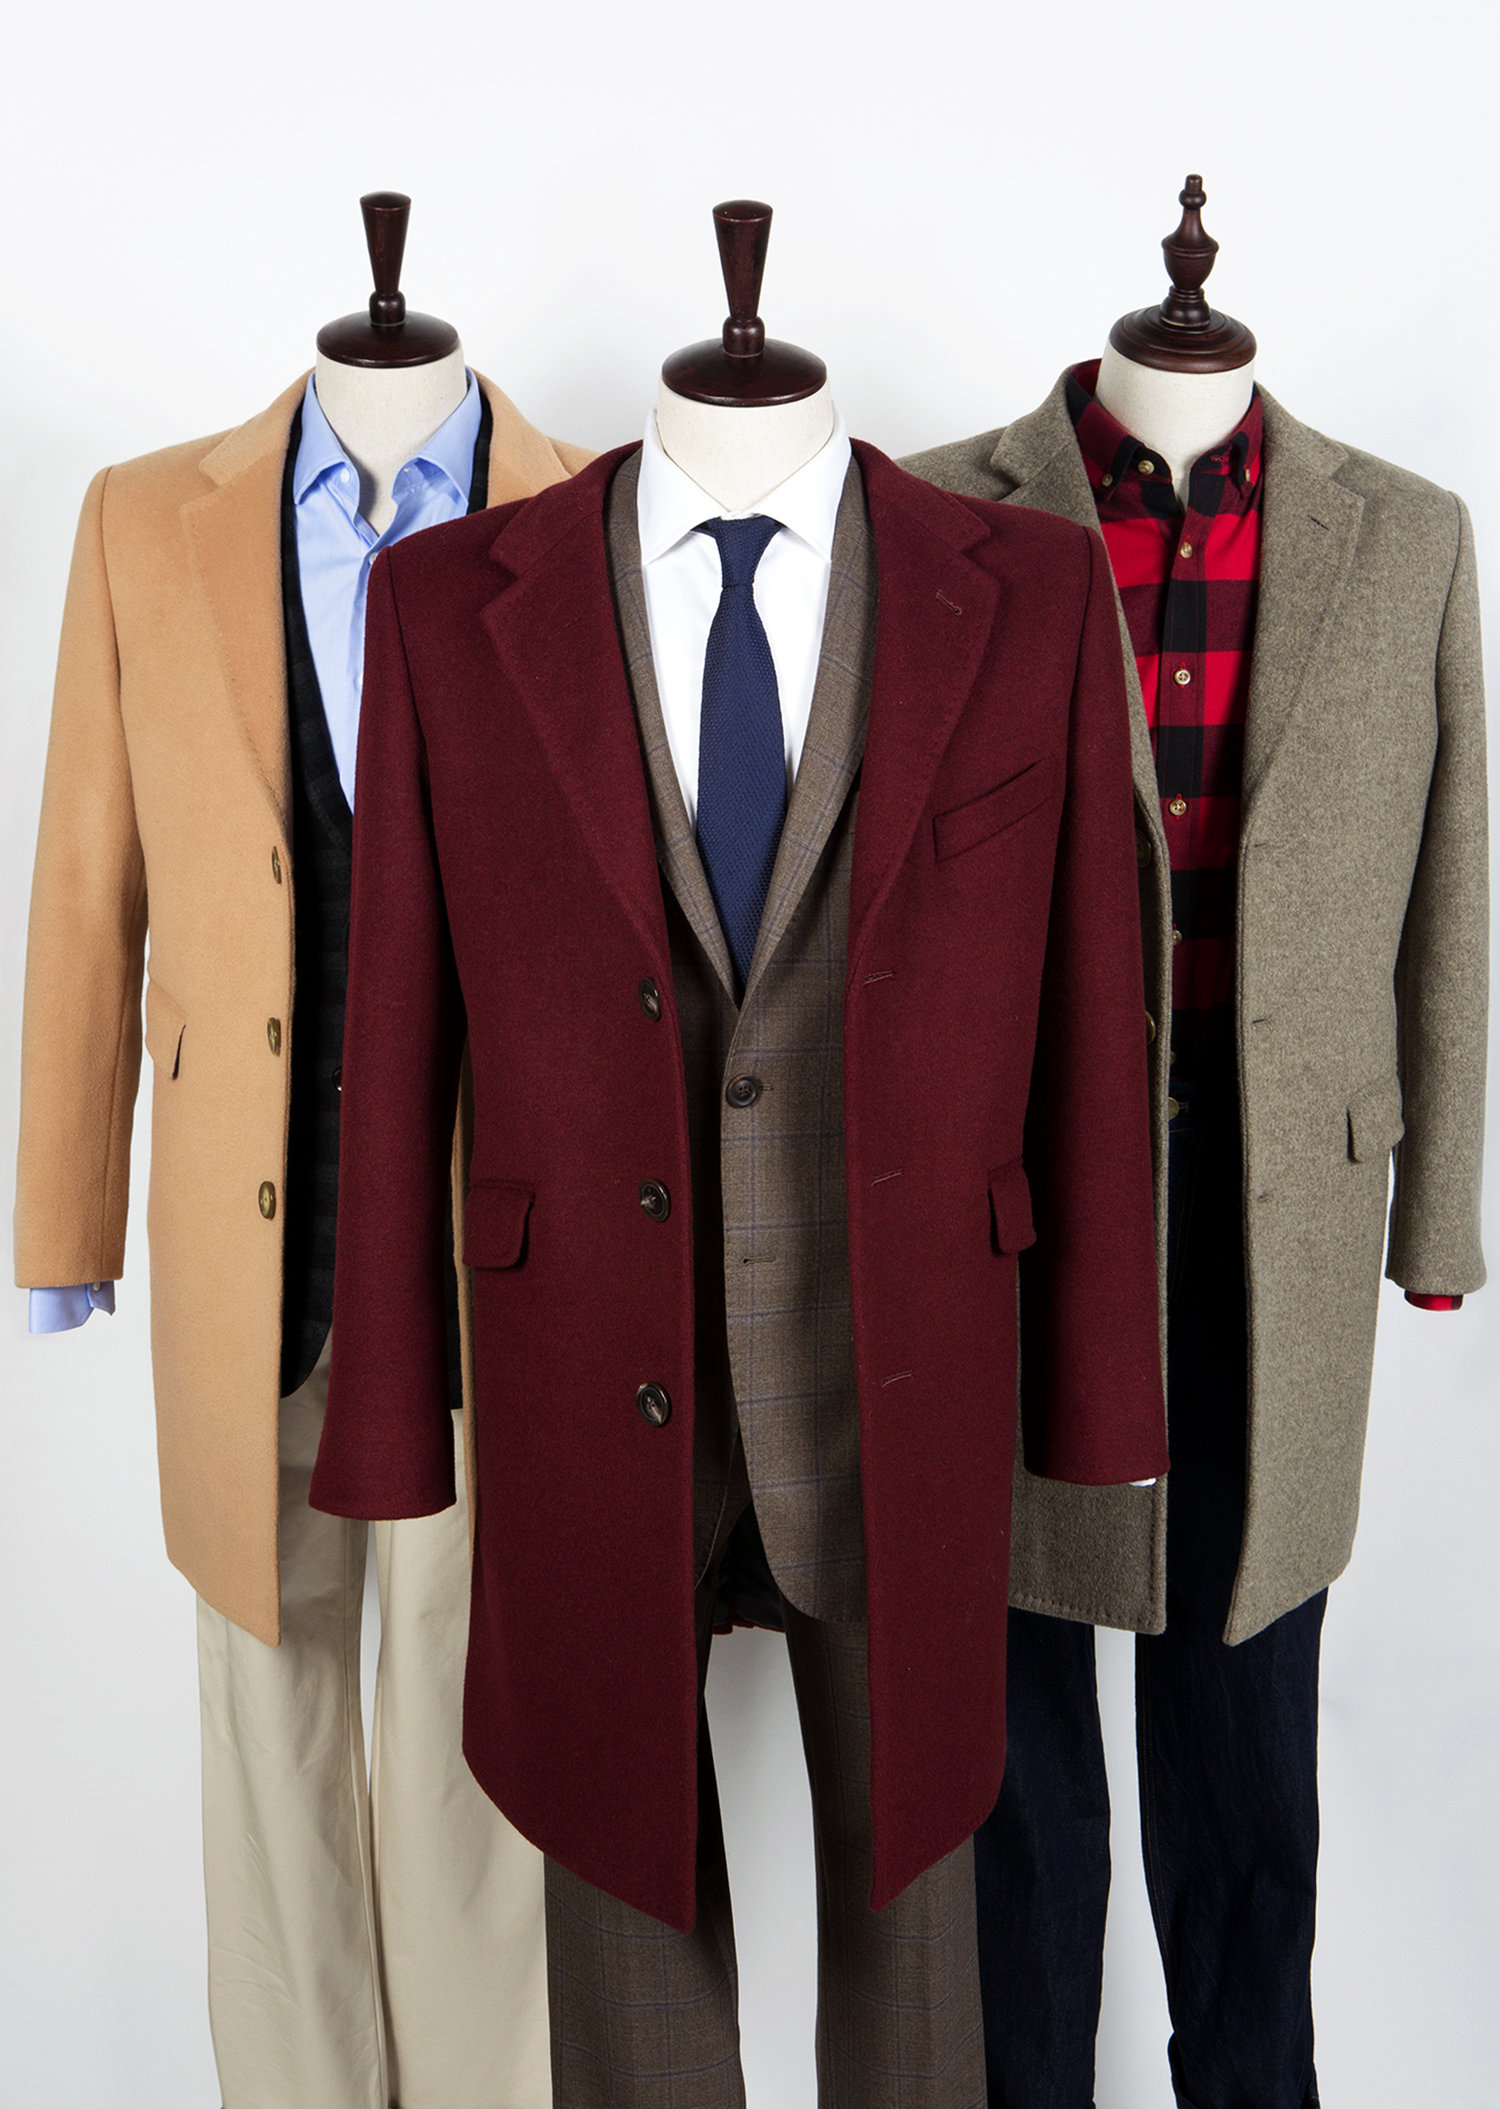 Making the Case for Topcoats